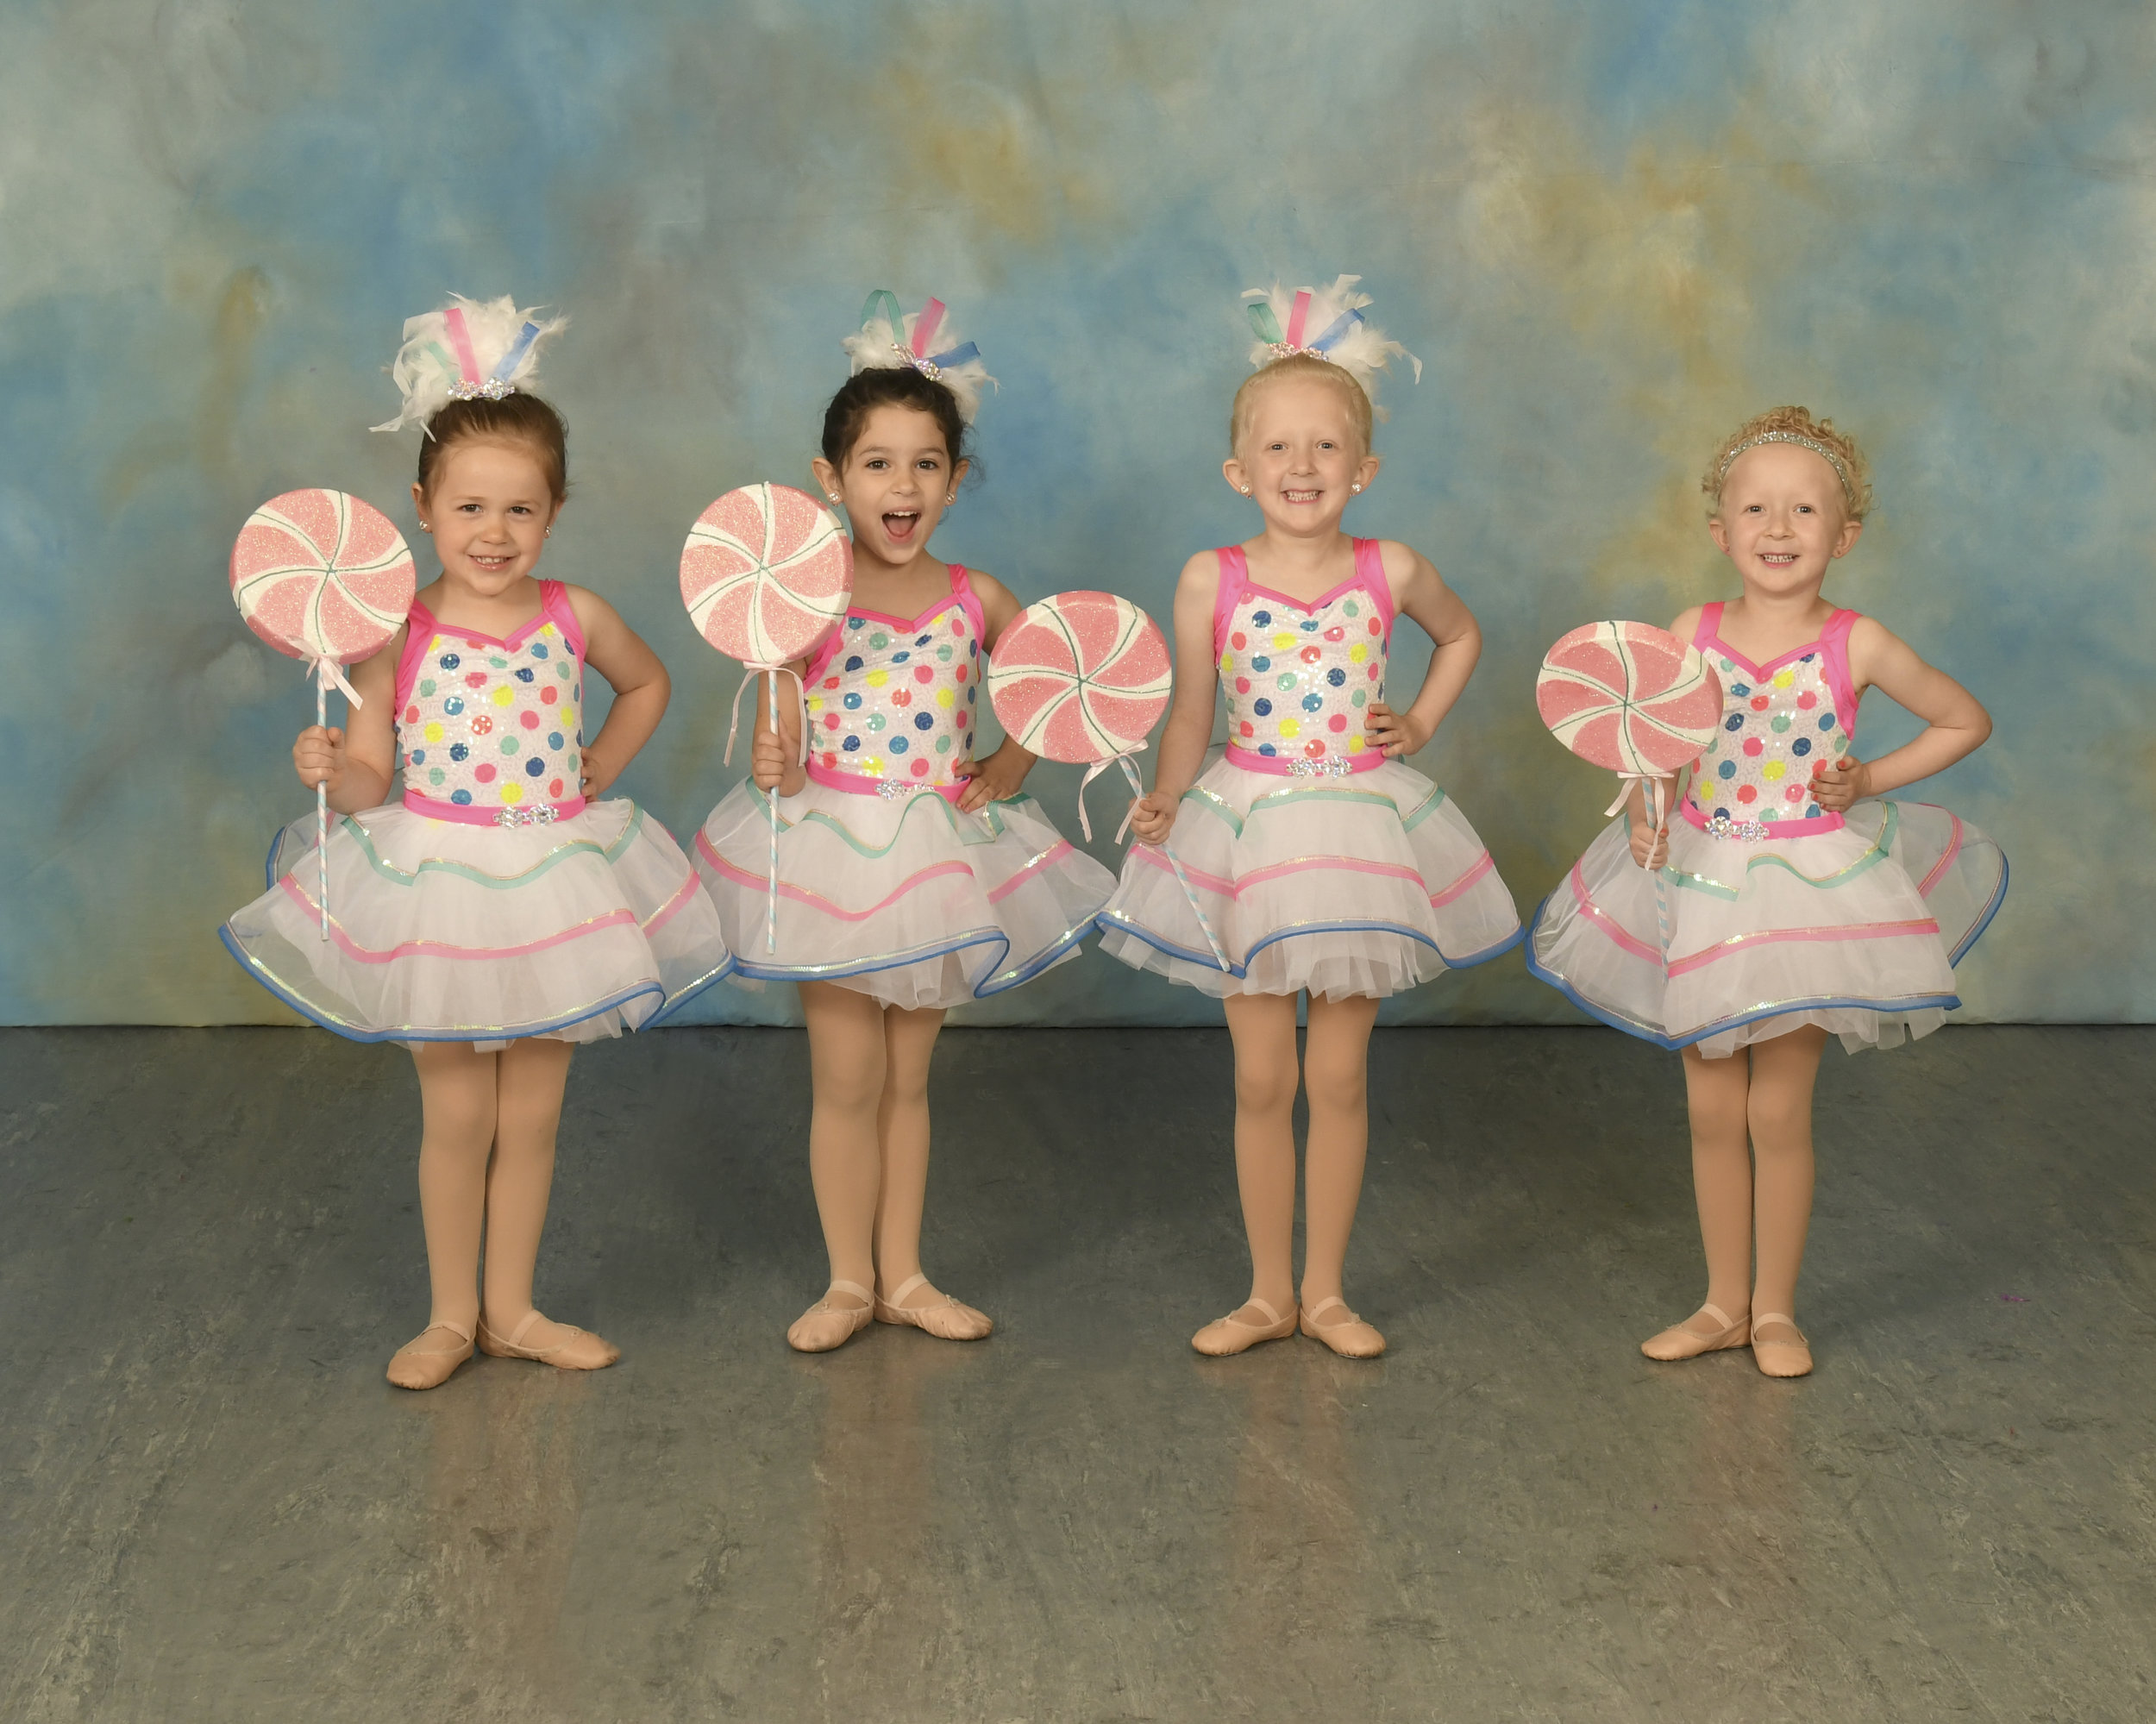 3 year old ballet dance class with lollipops